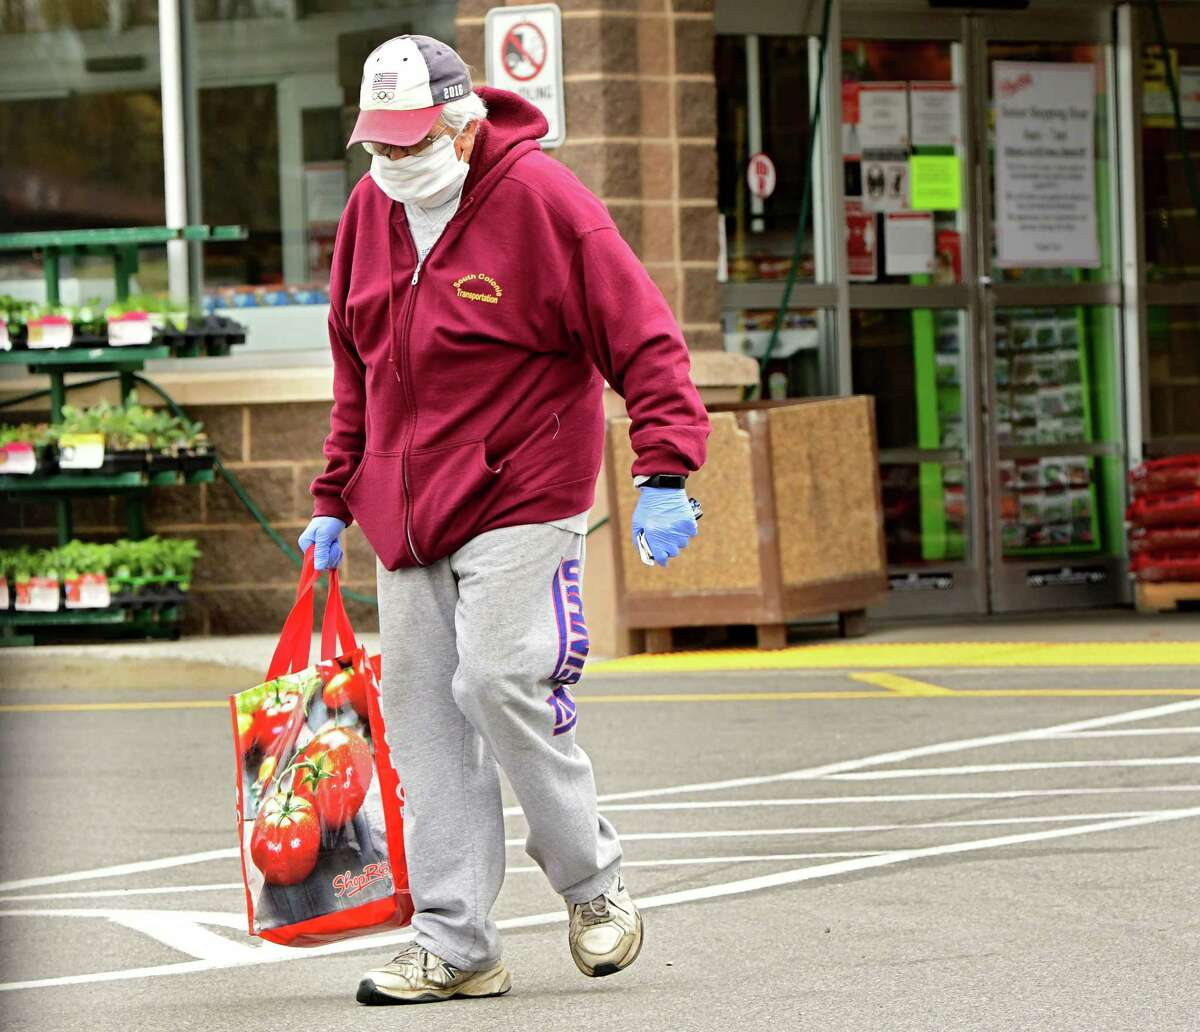 A shopper walks out of a Shoprite with groceries on Wednesday, May 6, 2020 in Colonie, N.Y. Shoprite is one of the local grocery stores limiting beef, pork and poultry sales. (Lori Van Buren/Times Union)